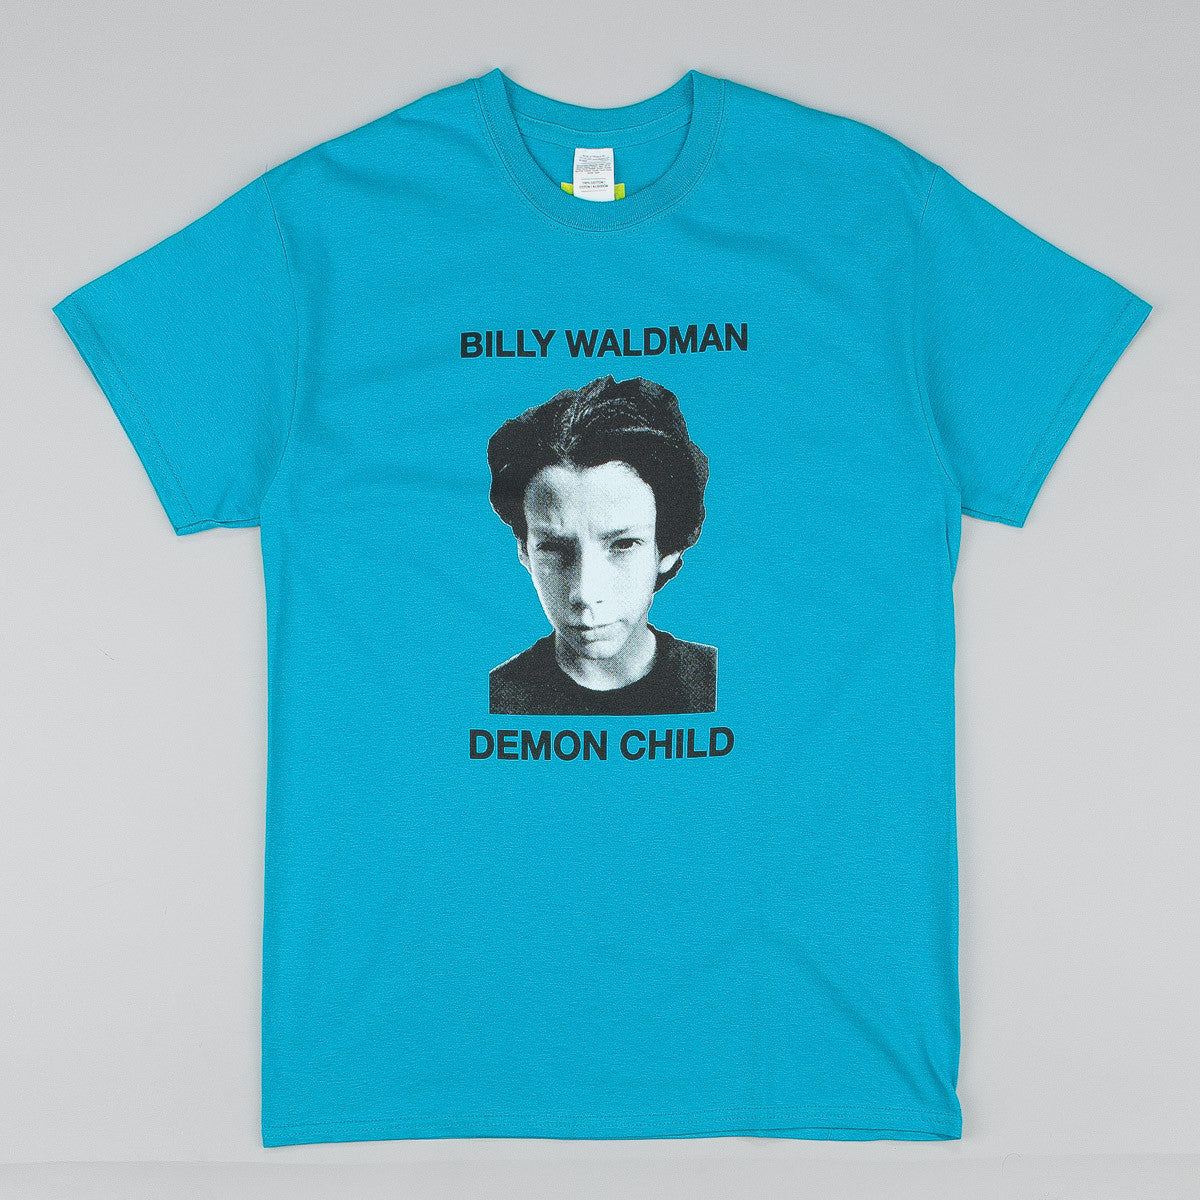 Dear Skating BW Demon Child T-Shirt